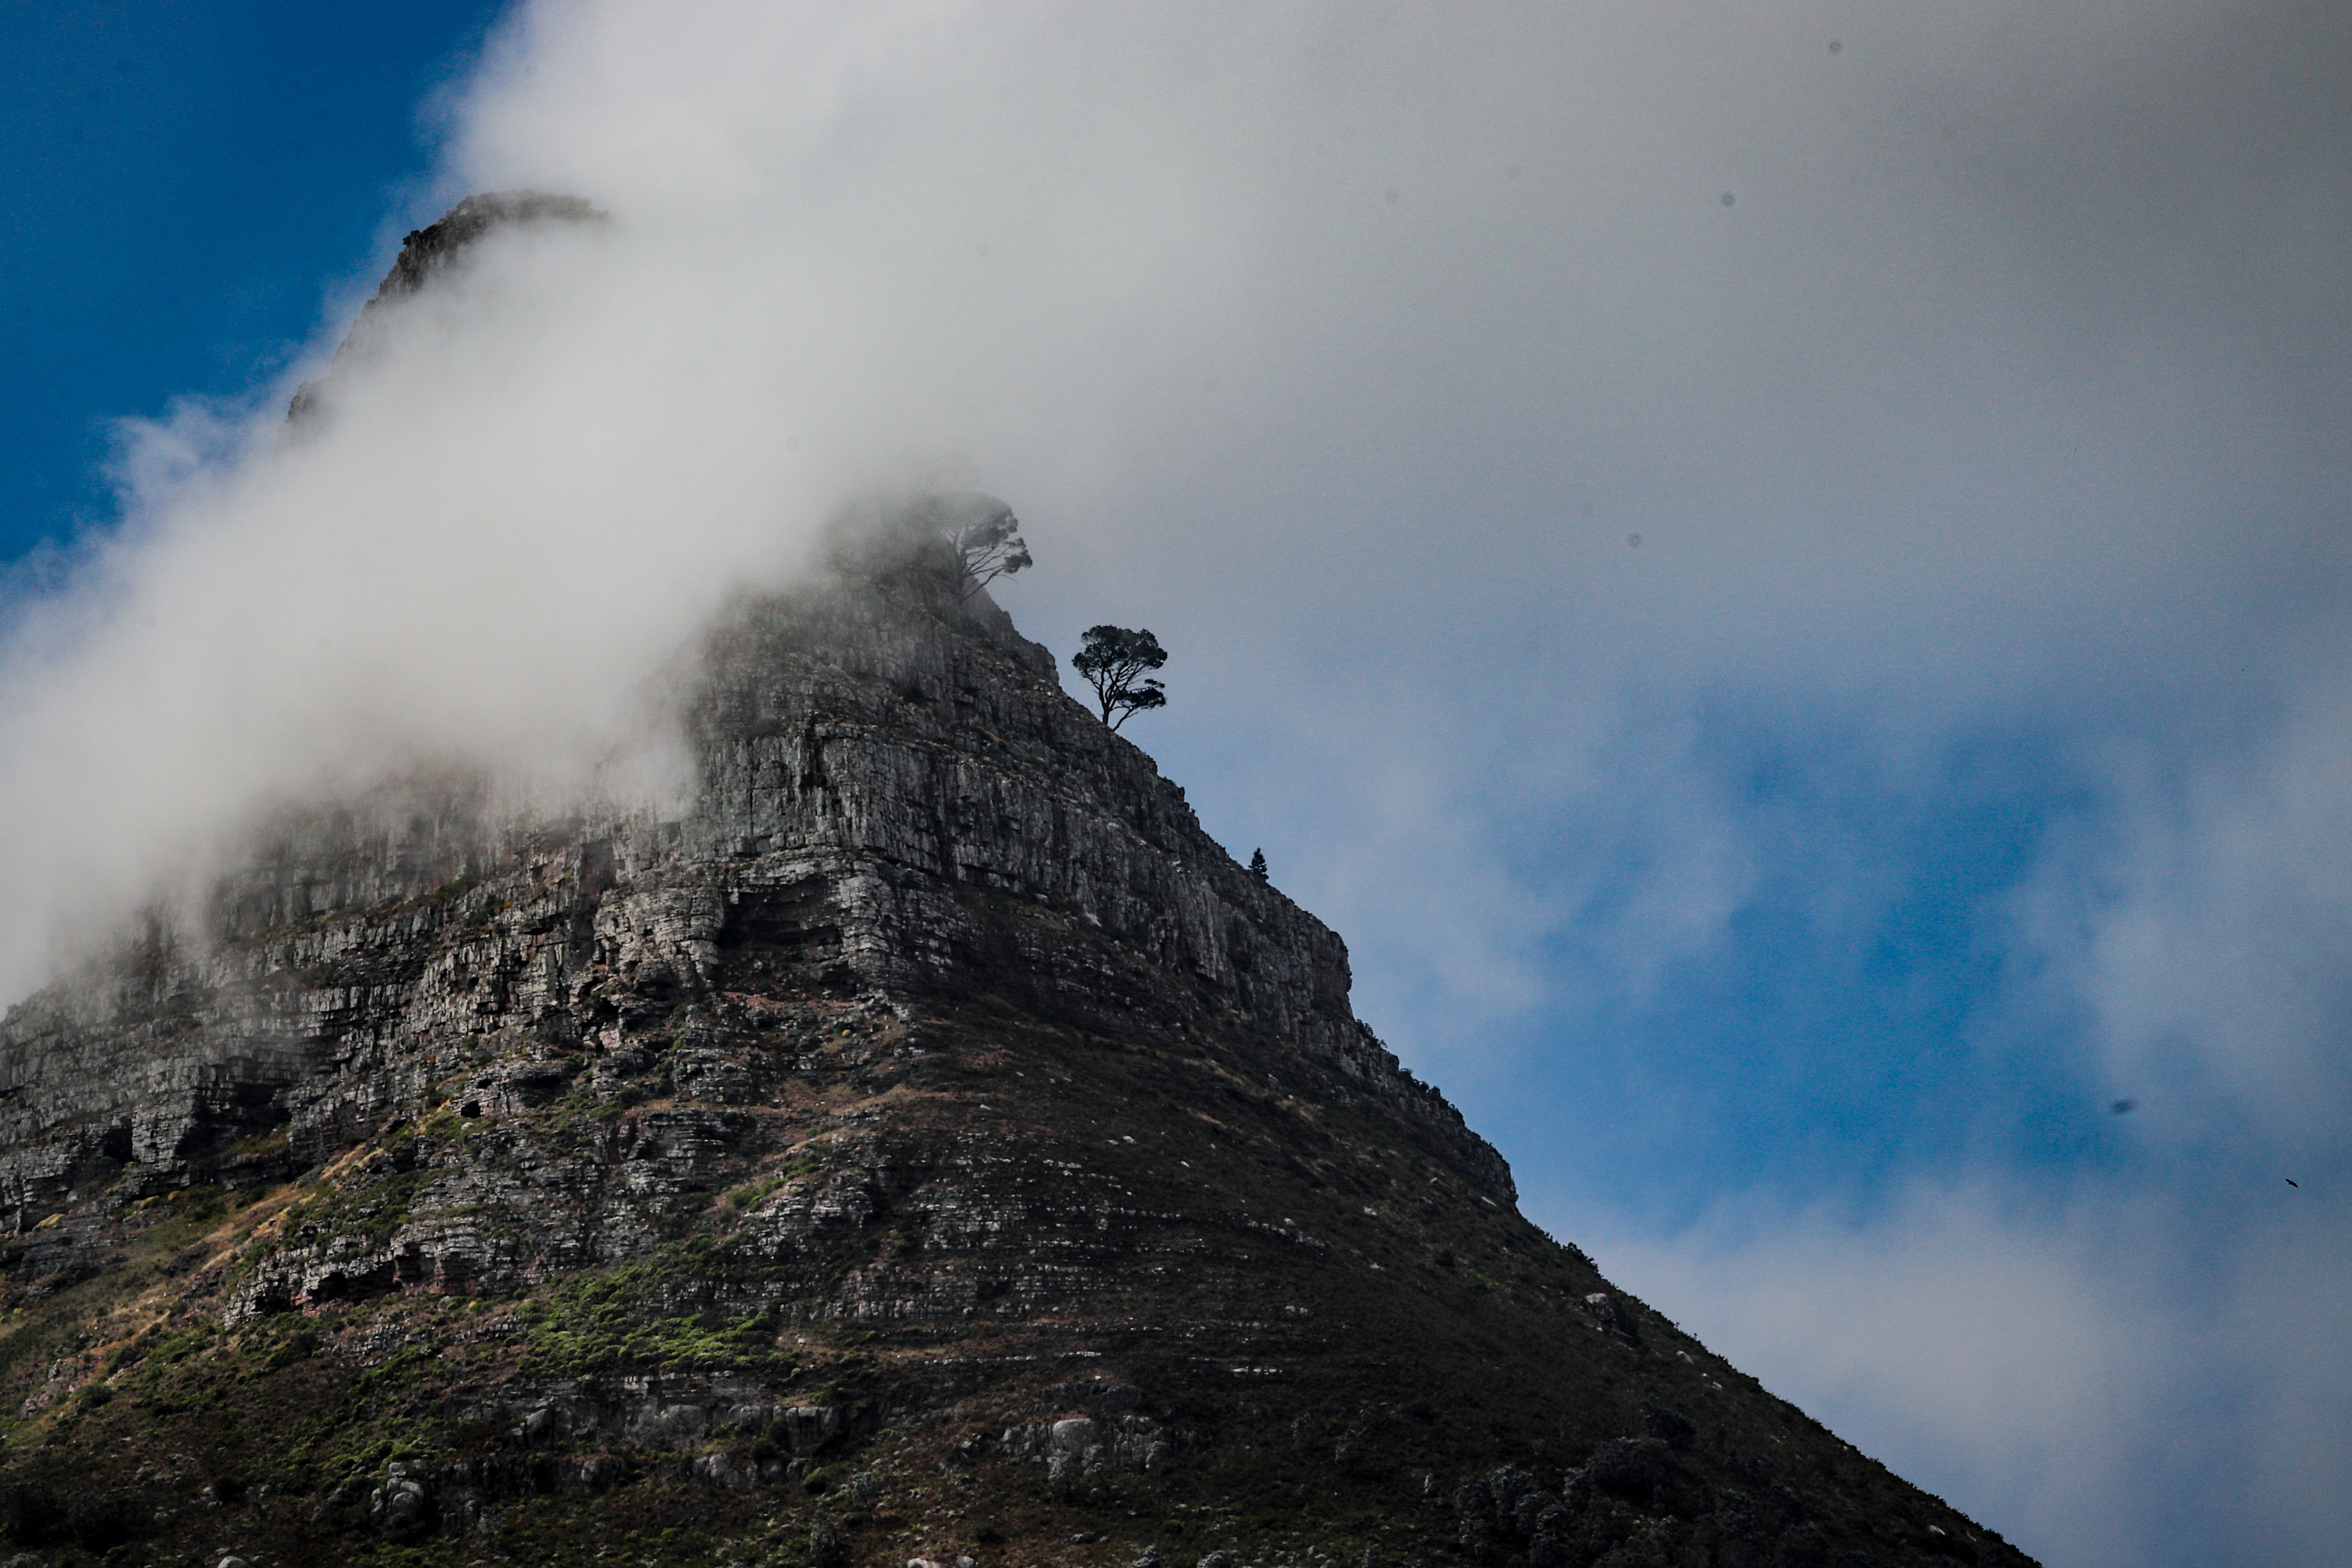 landscape photo of gray rock mountain covered with clouds